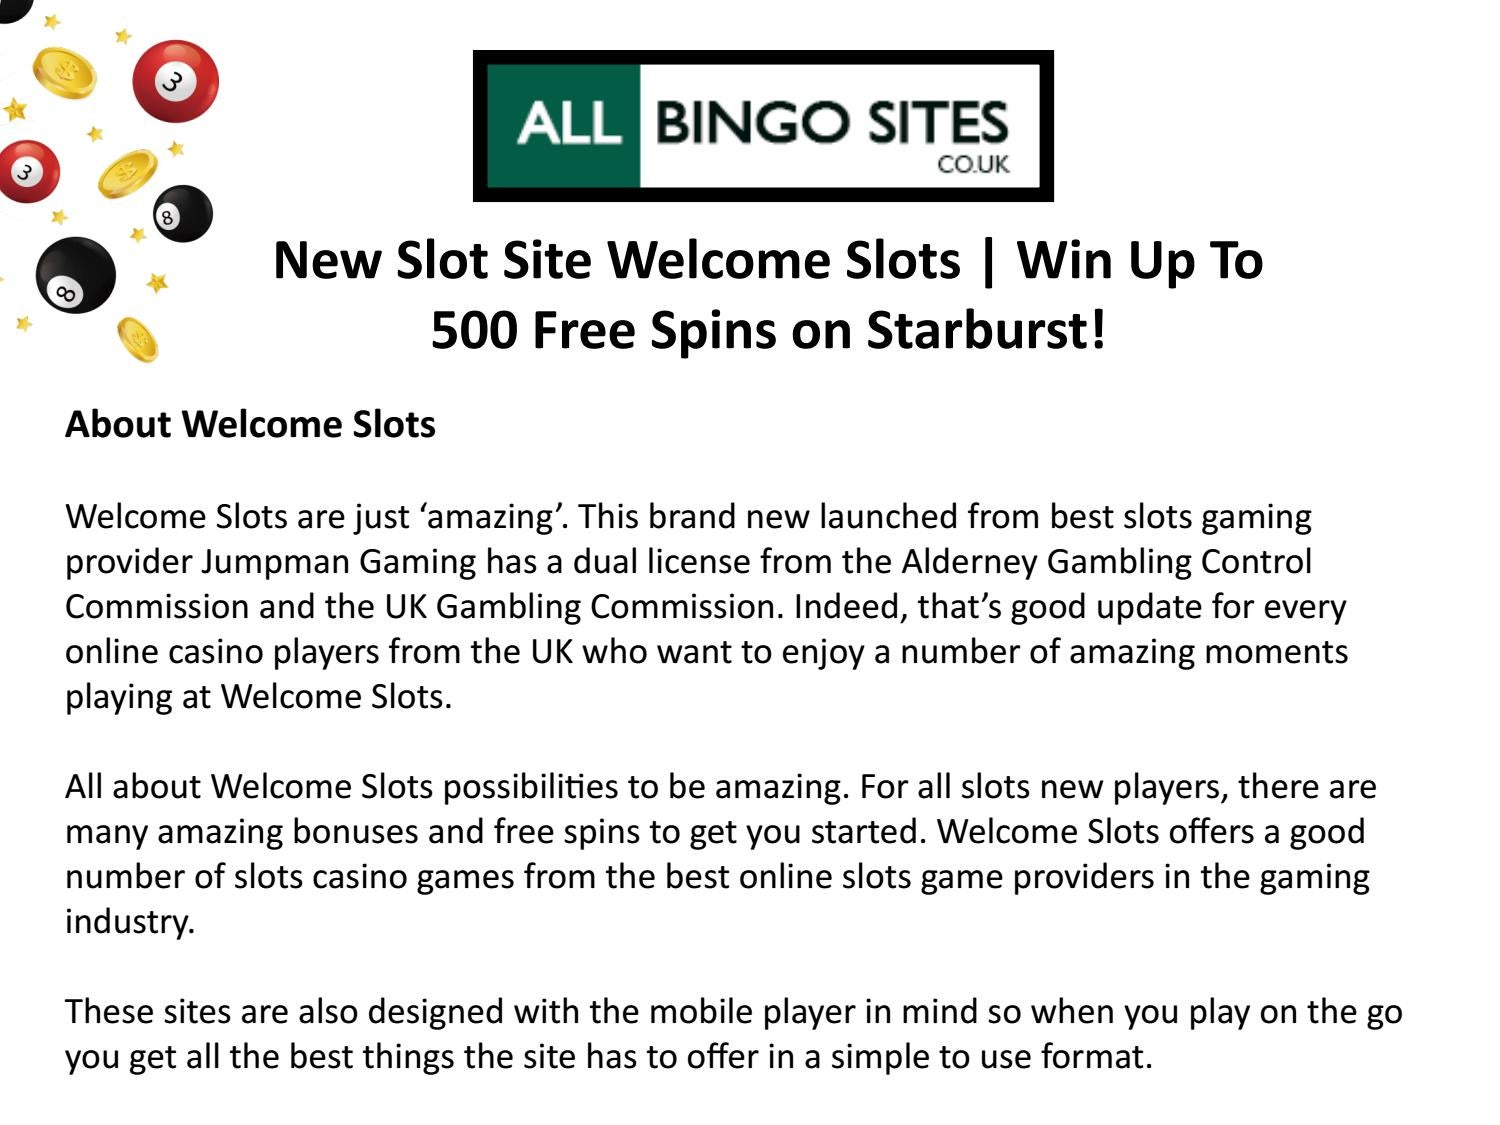 New Slot Site Welcome Slots Win Up To 500 Free Spins On